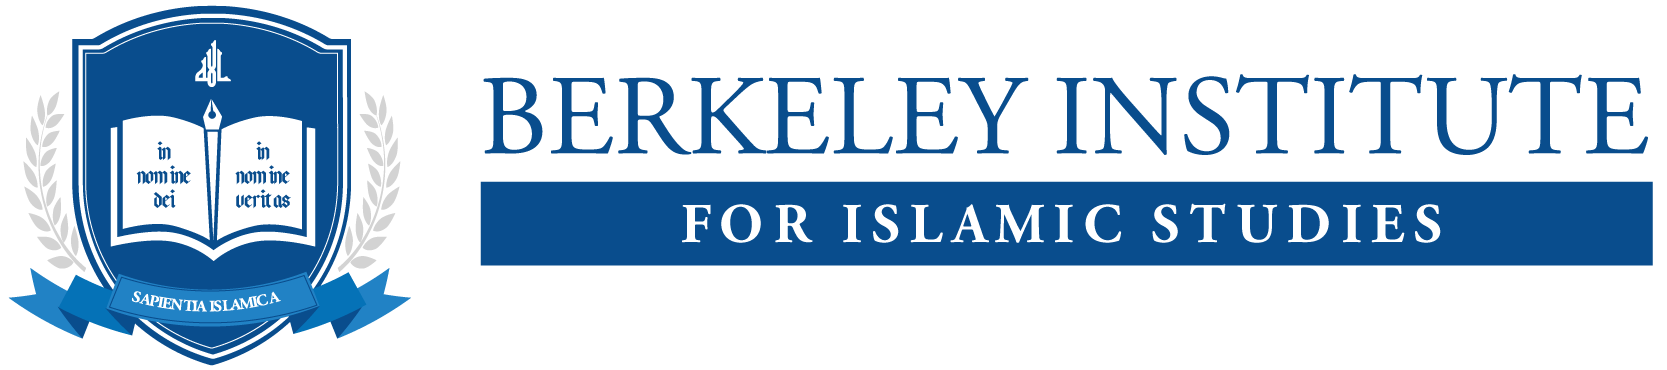 Berkeley Institute for Islamic Studies Retina Logo